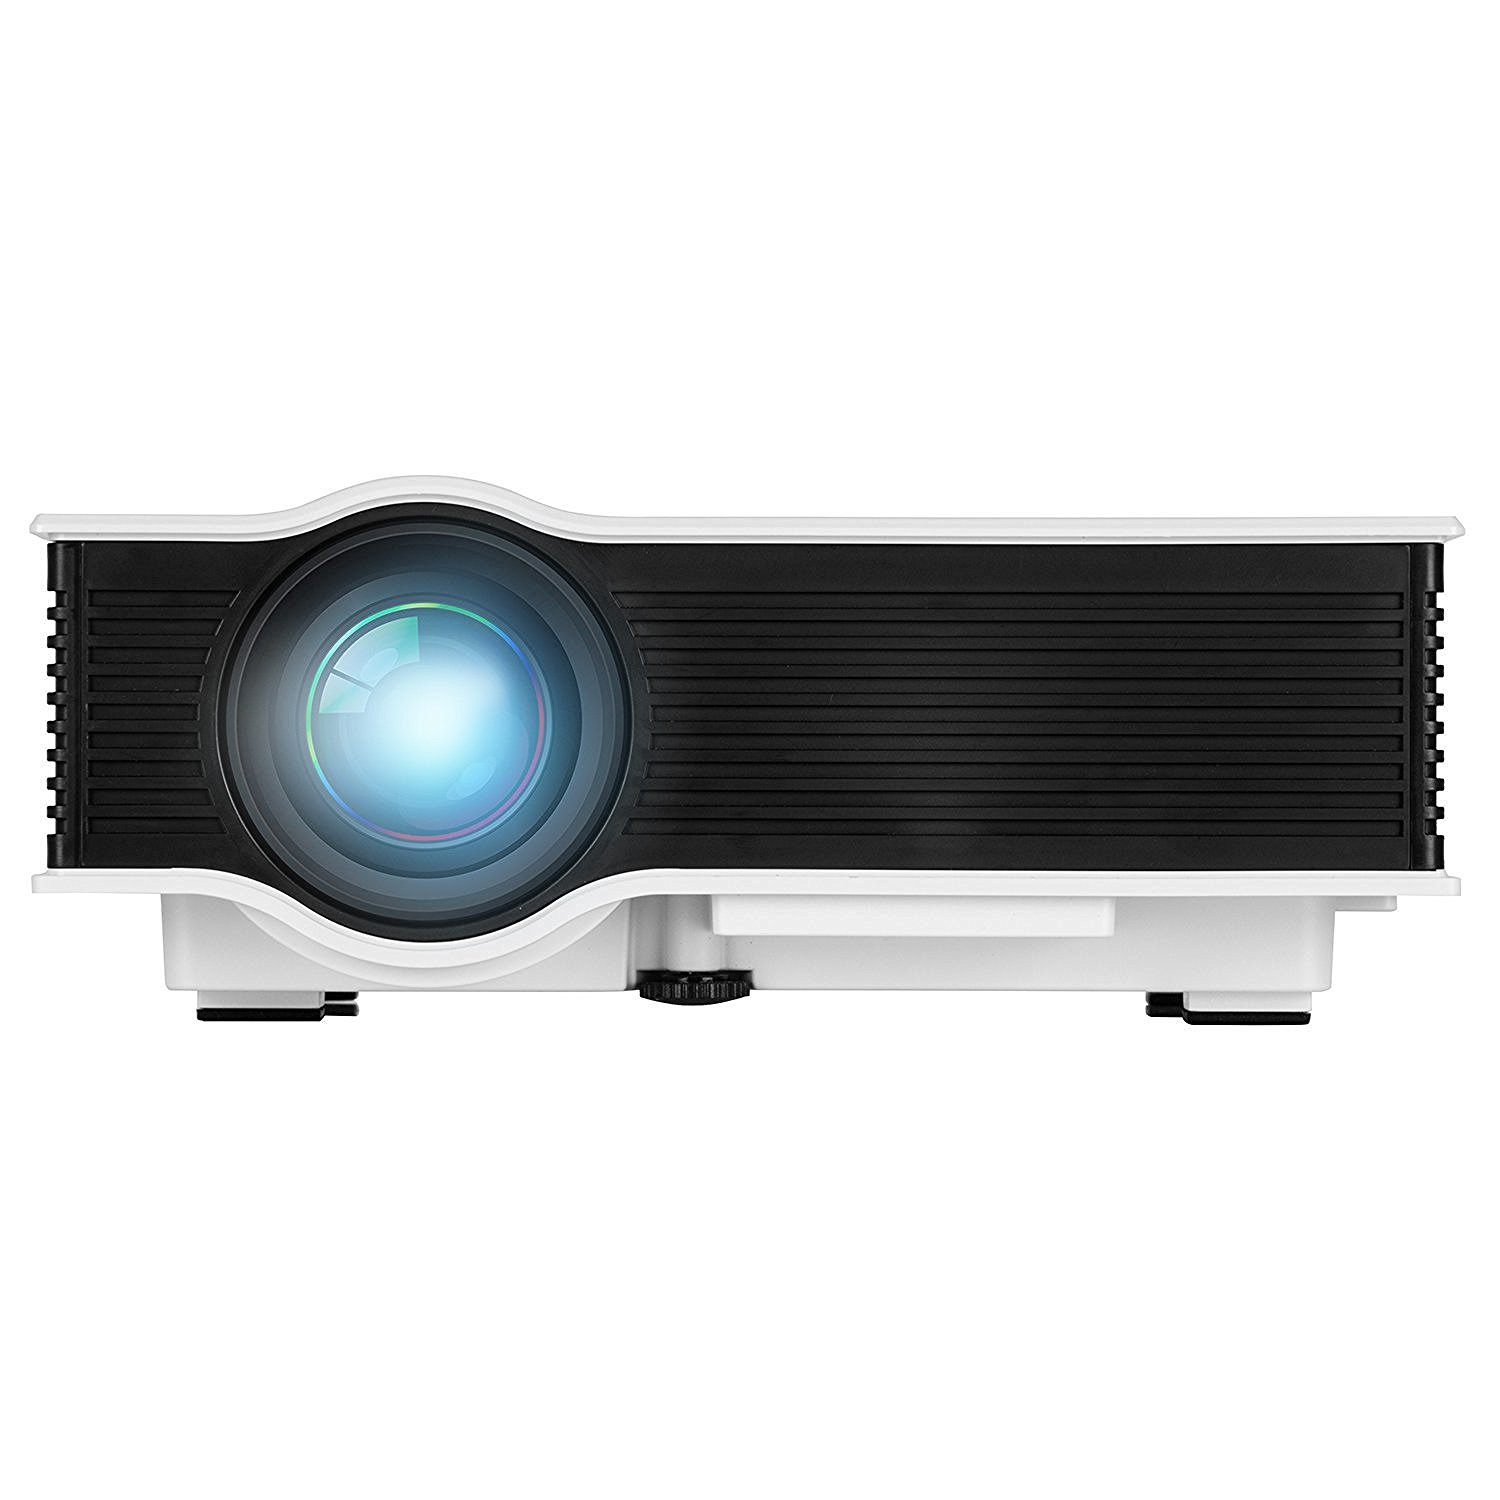 "LED Projector (Warranty Included), ERISAN Updated Full Color 130"" Image Pro Mini LCD LED Portable Projector For Home Theater Cinema Game-Support HD 1080P Video/800 Lumens IP/IR/USB/SD/HDMI"